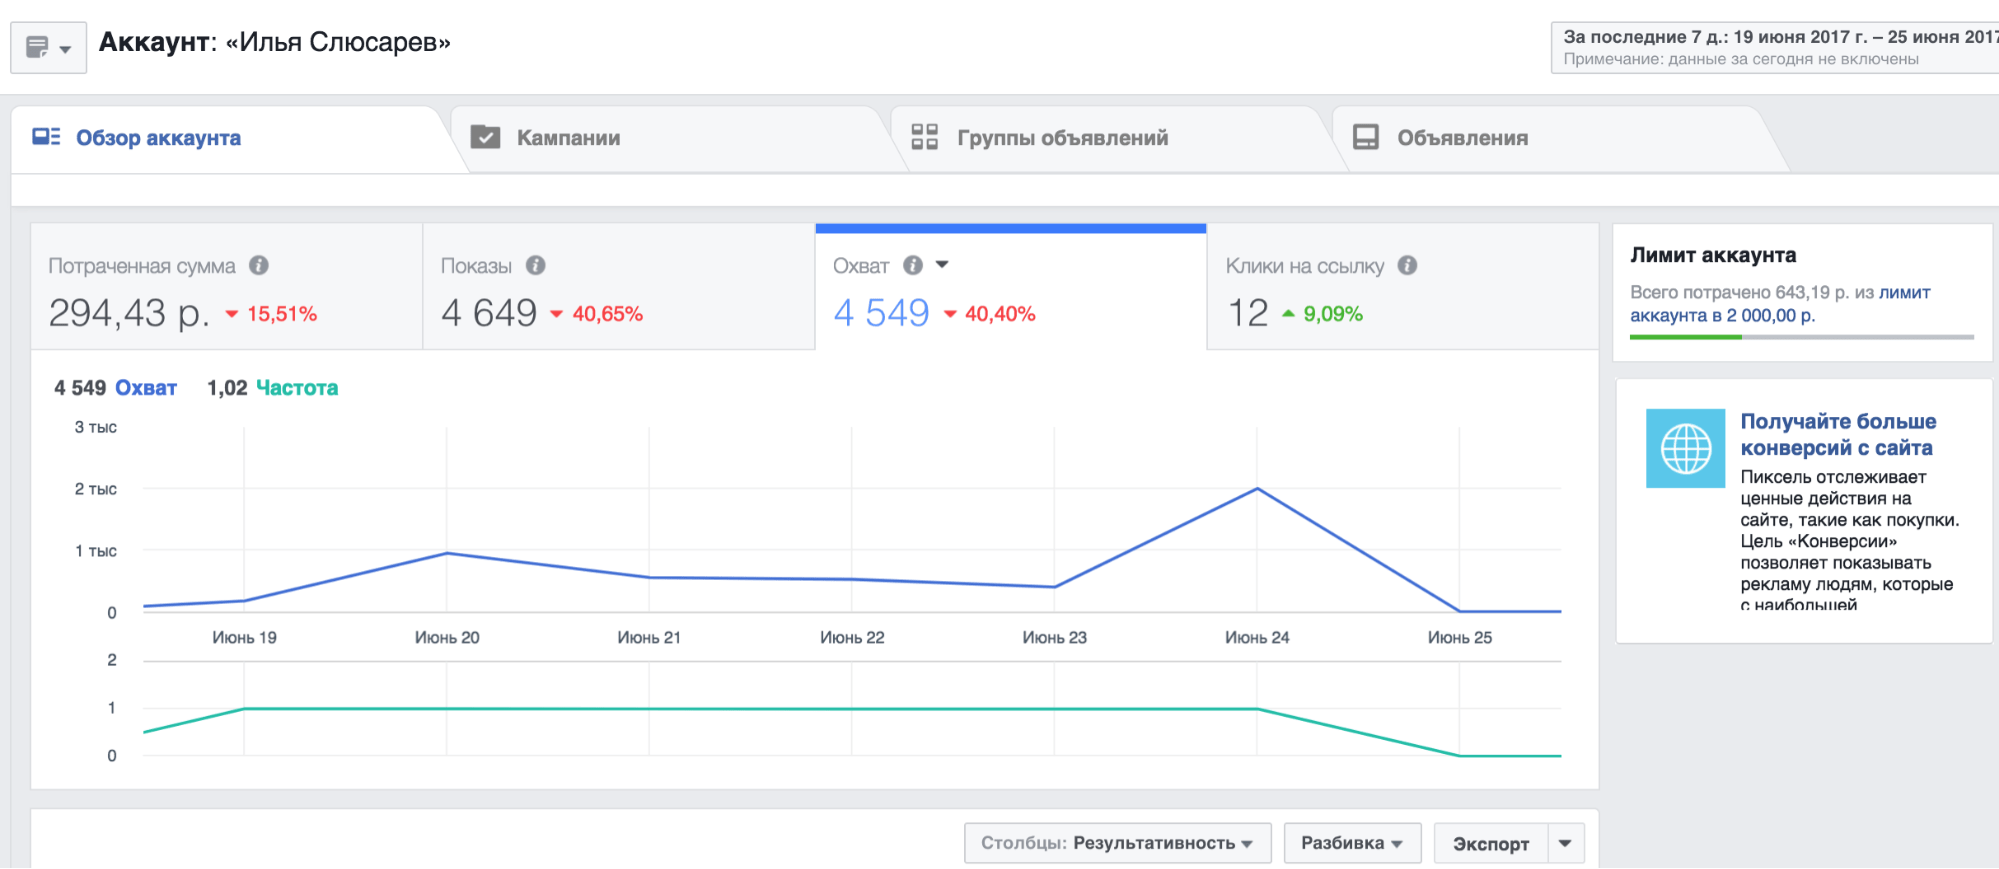 Analysis of advertising on Instagram through the Facebook advertising account